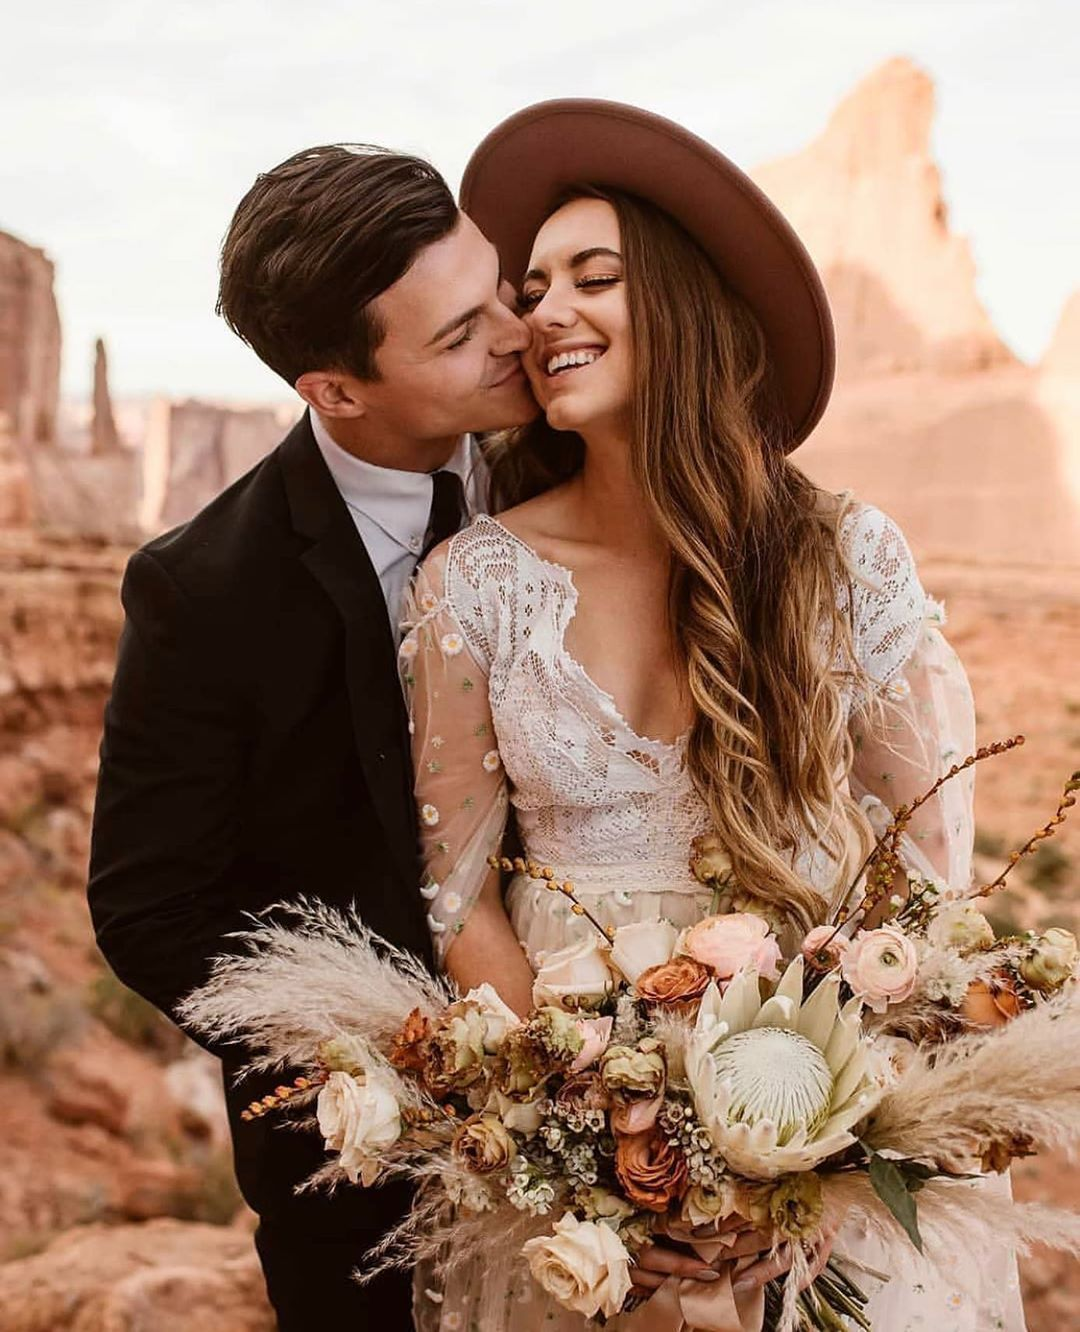 Unscripted Posing App On Instagram Prompt Idea Give Her Butterfly Kisses On Her Cheek Unscripted Posing A Wedding Dresses Lace Cute Kiss Photography Poses